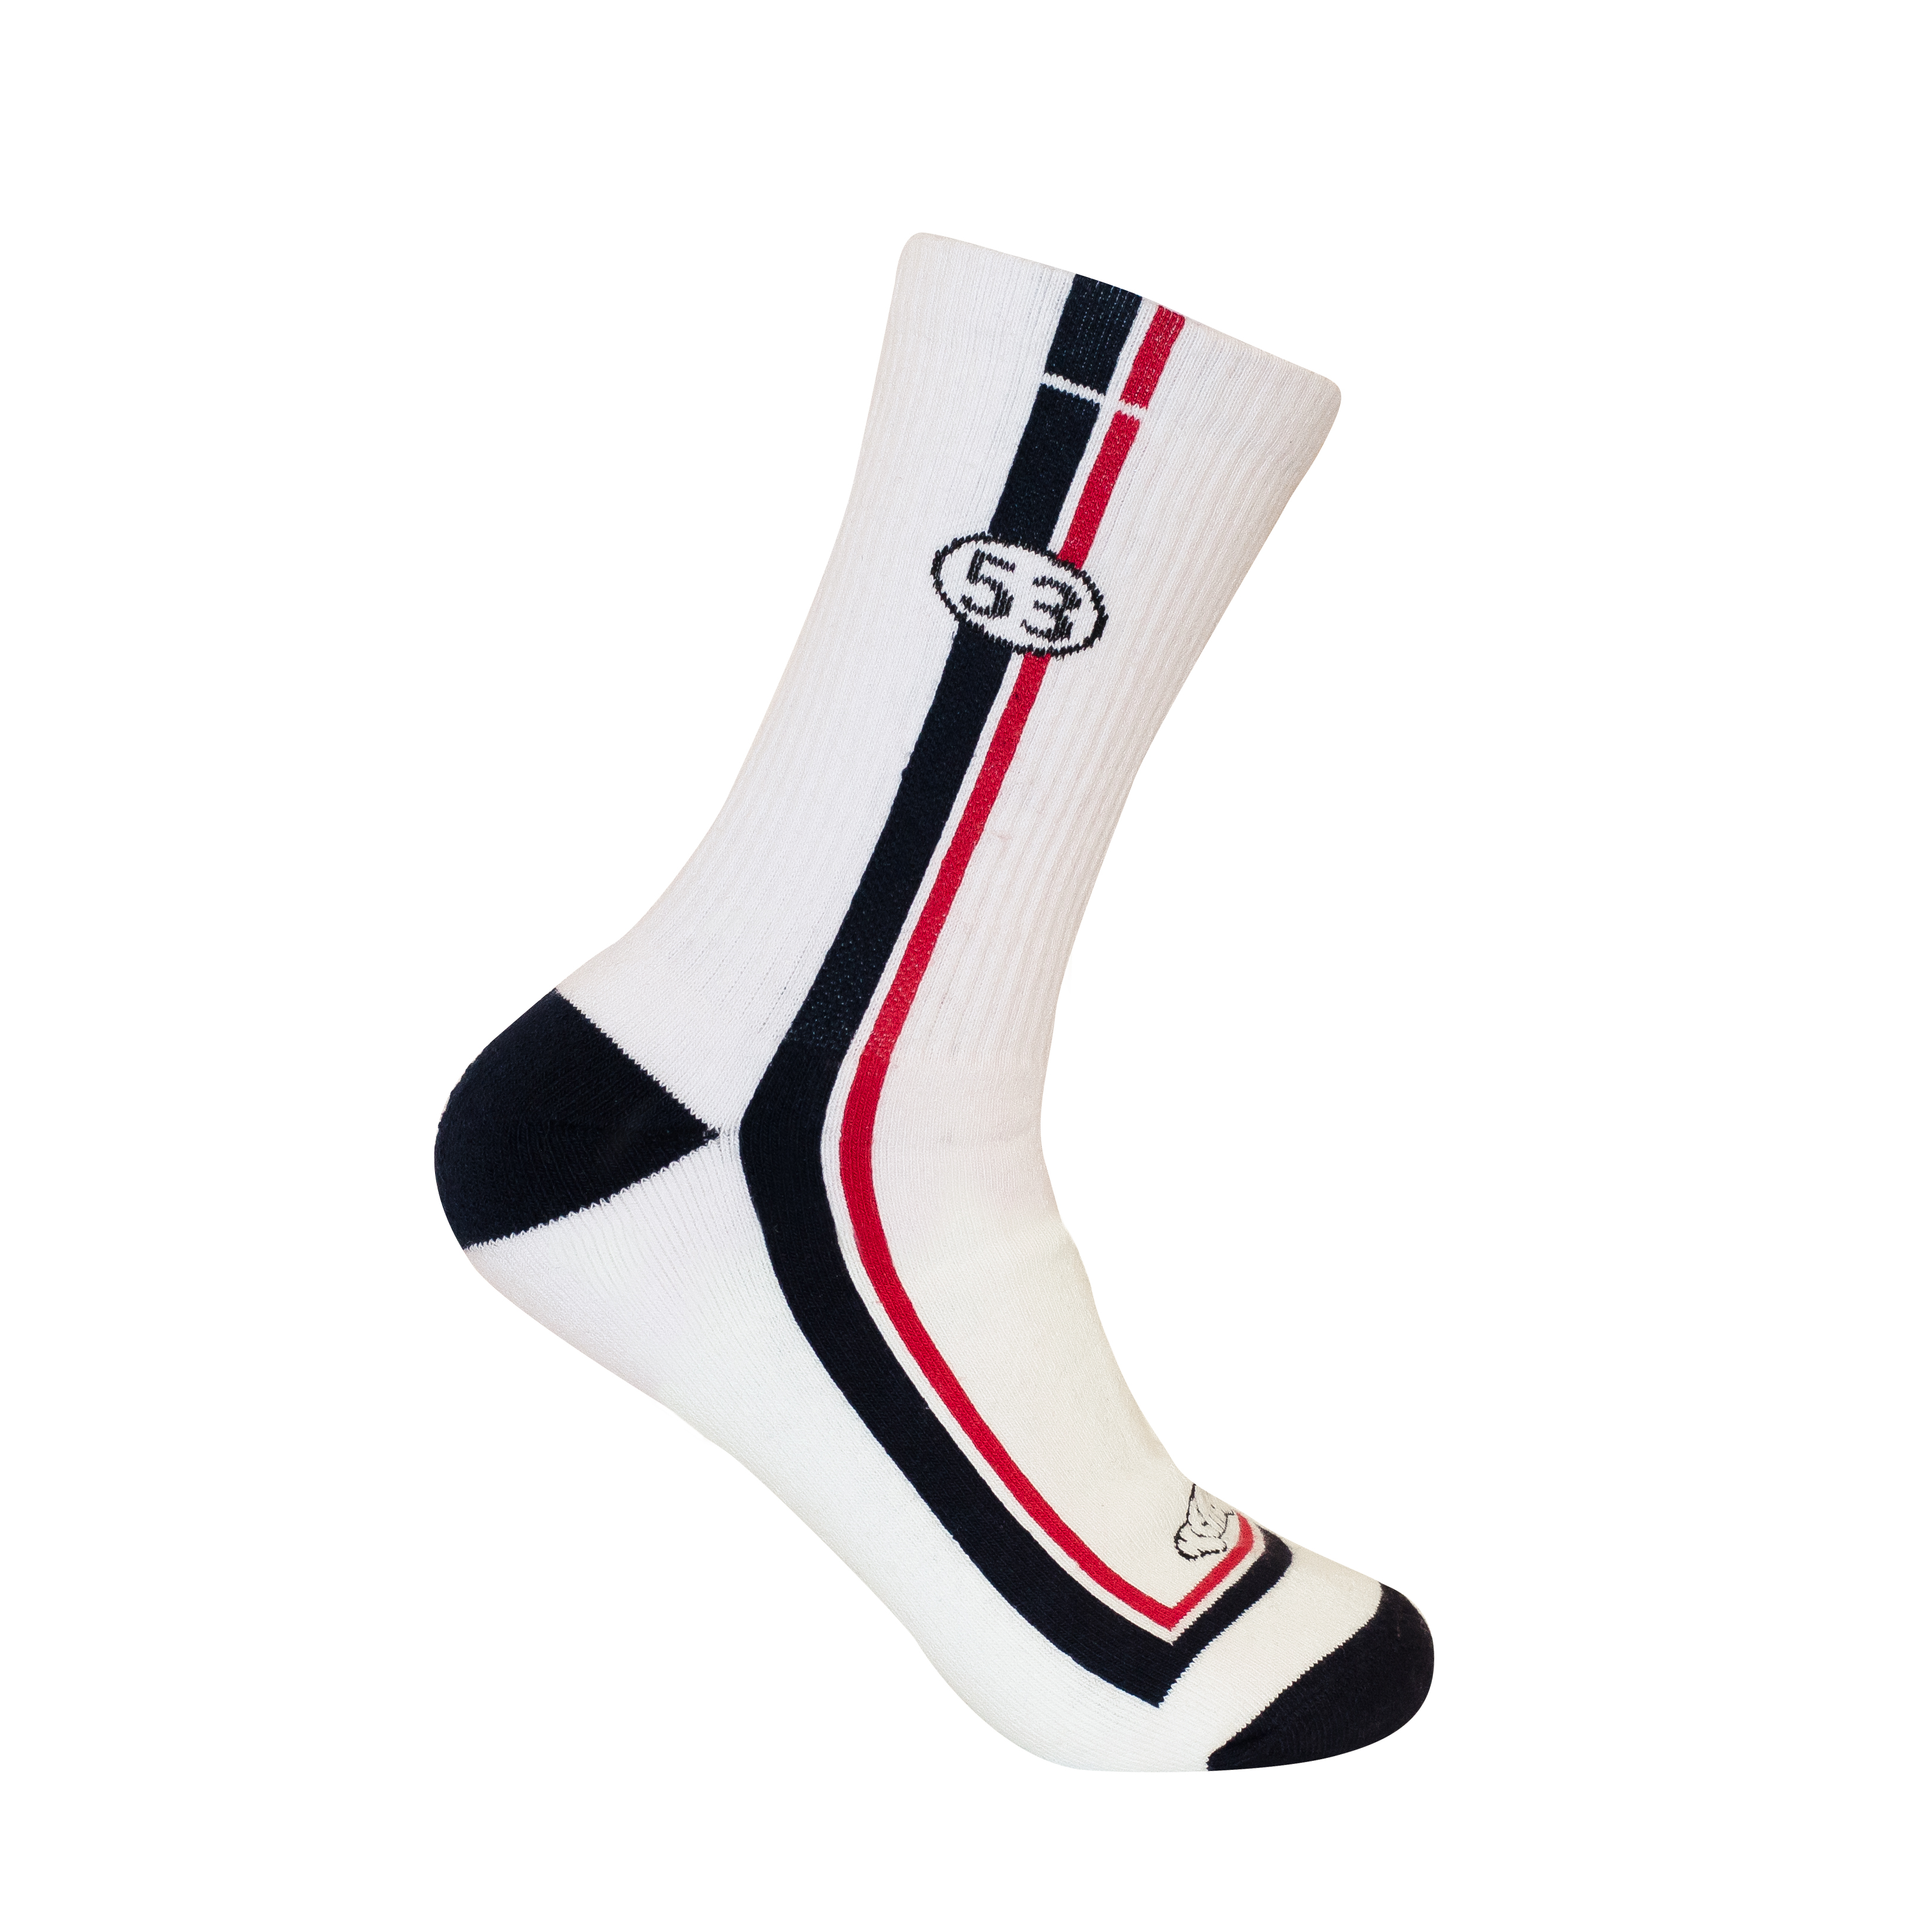 KS04 ECO UPCYCLED SPORTS CREW SOCKS